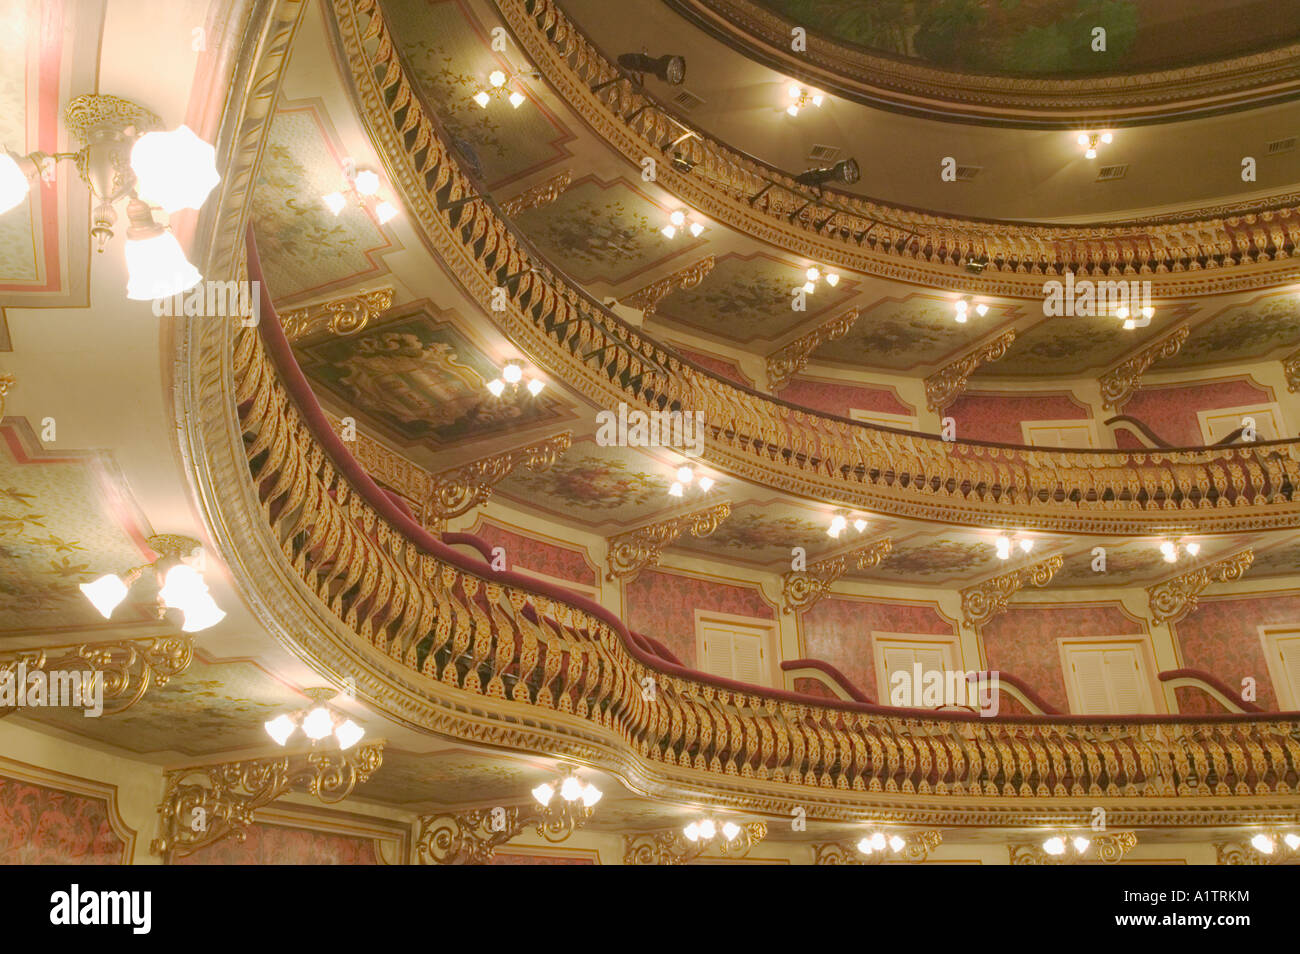 Balconies And Ornate Decor In The Teatro Do Paz The 19th Century